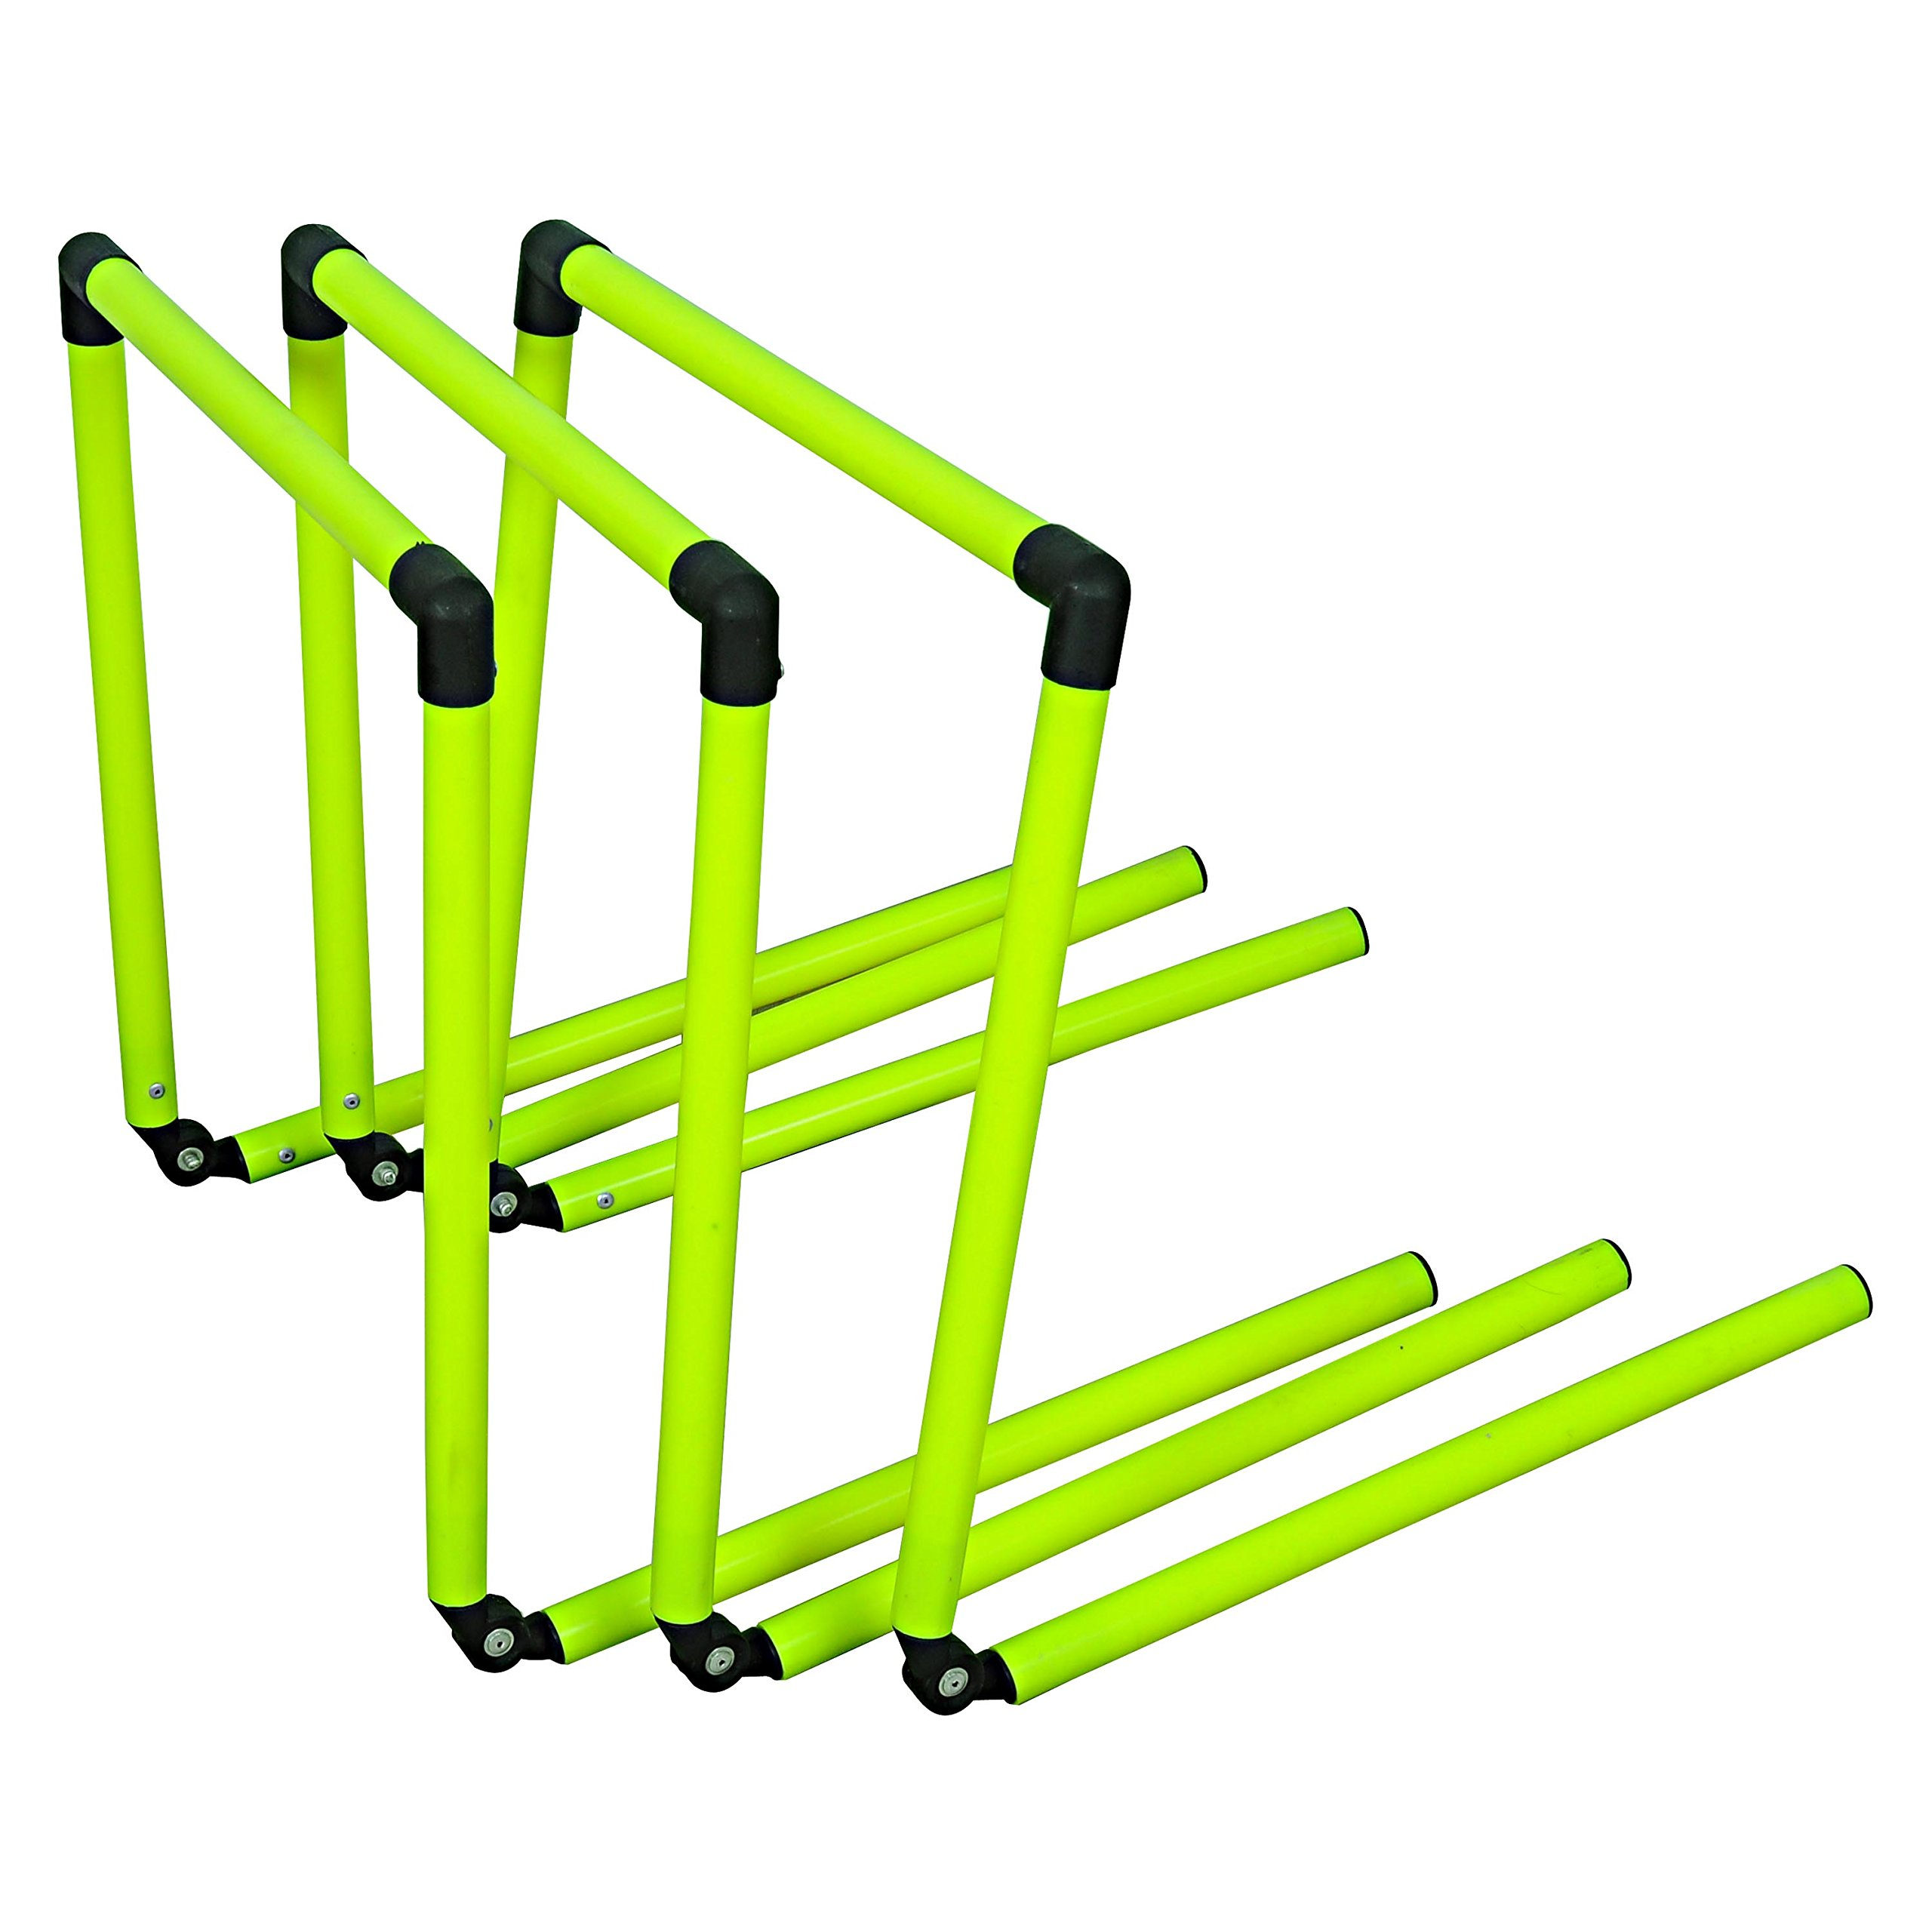 Grazzo Agility Speed Hurdles Set of 3 Adjustable 4 sizes-in-one - 3 inch to 12 inch PVC Green